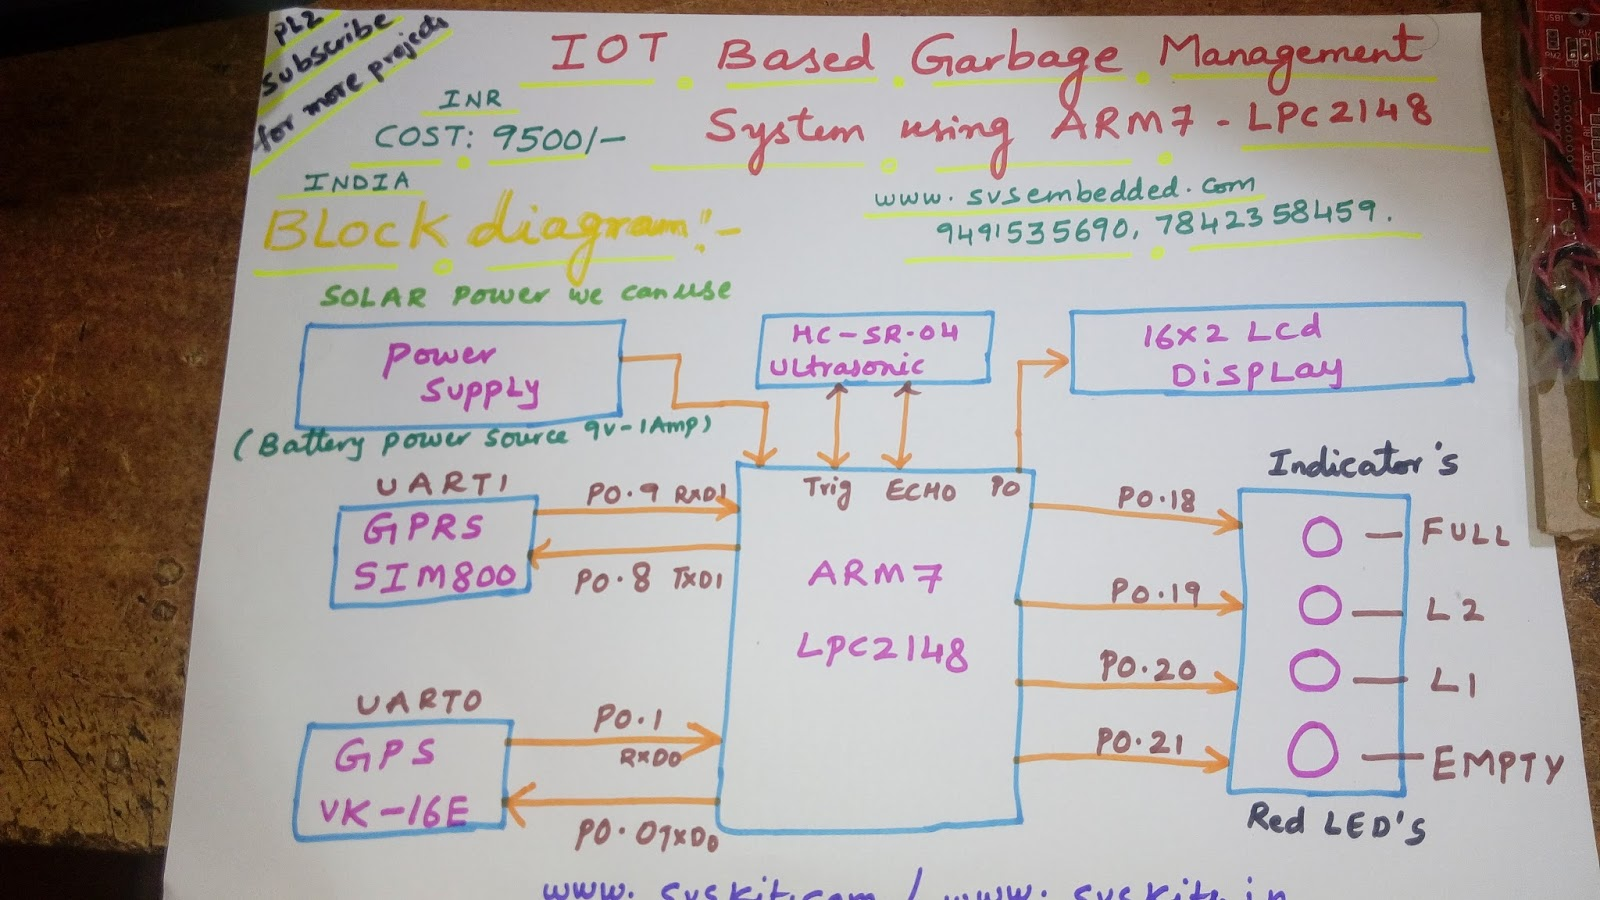 Svsembedded   9491535690  7842358459  Iot Based Garbage